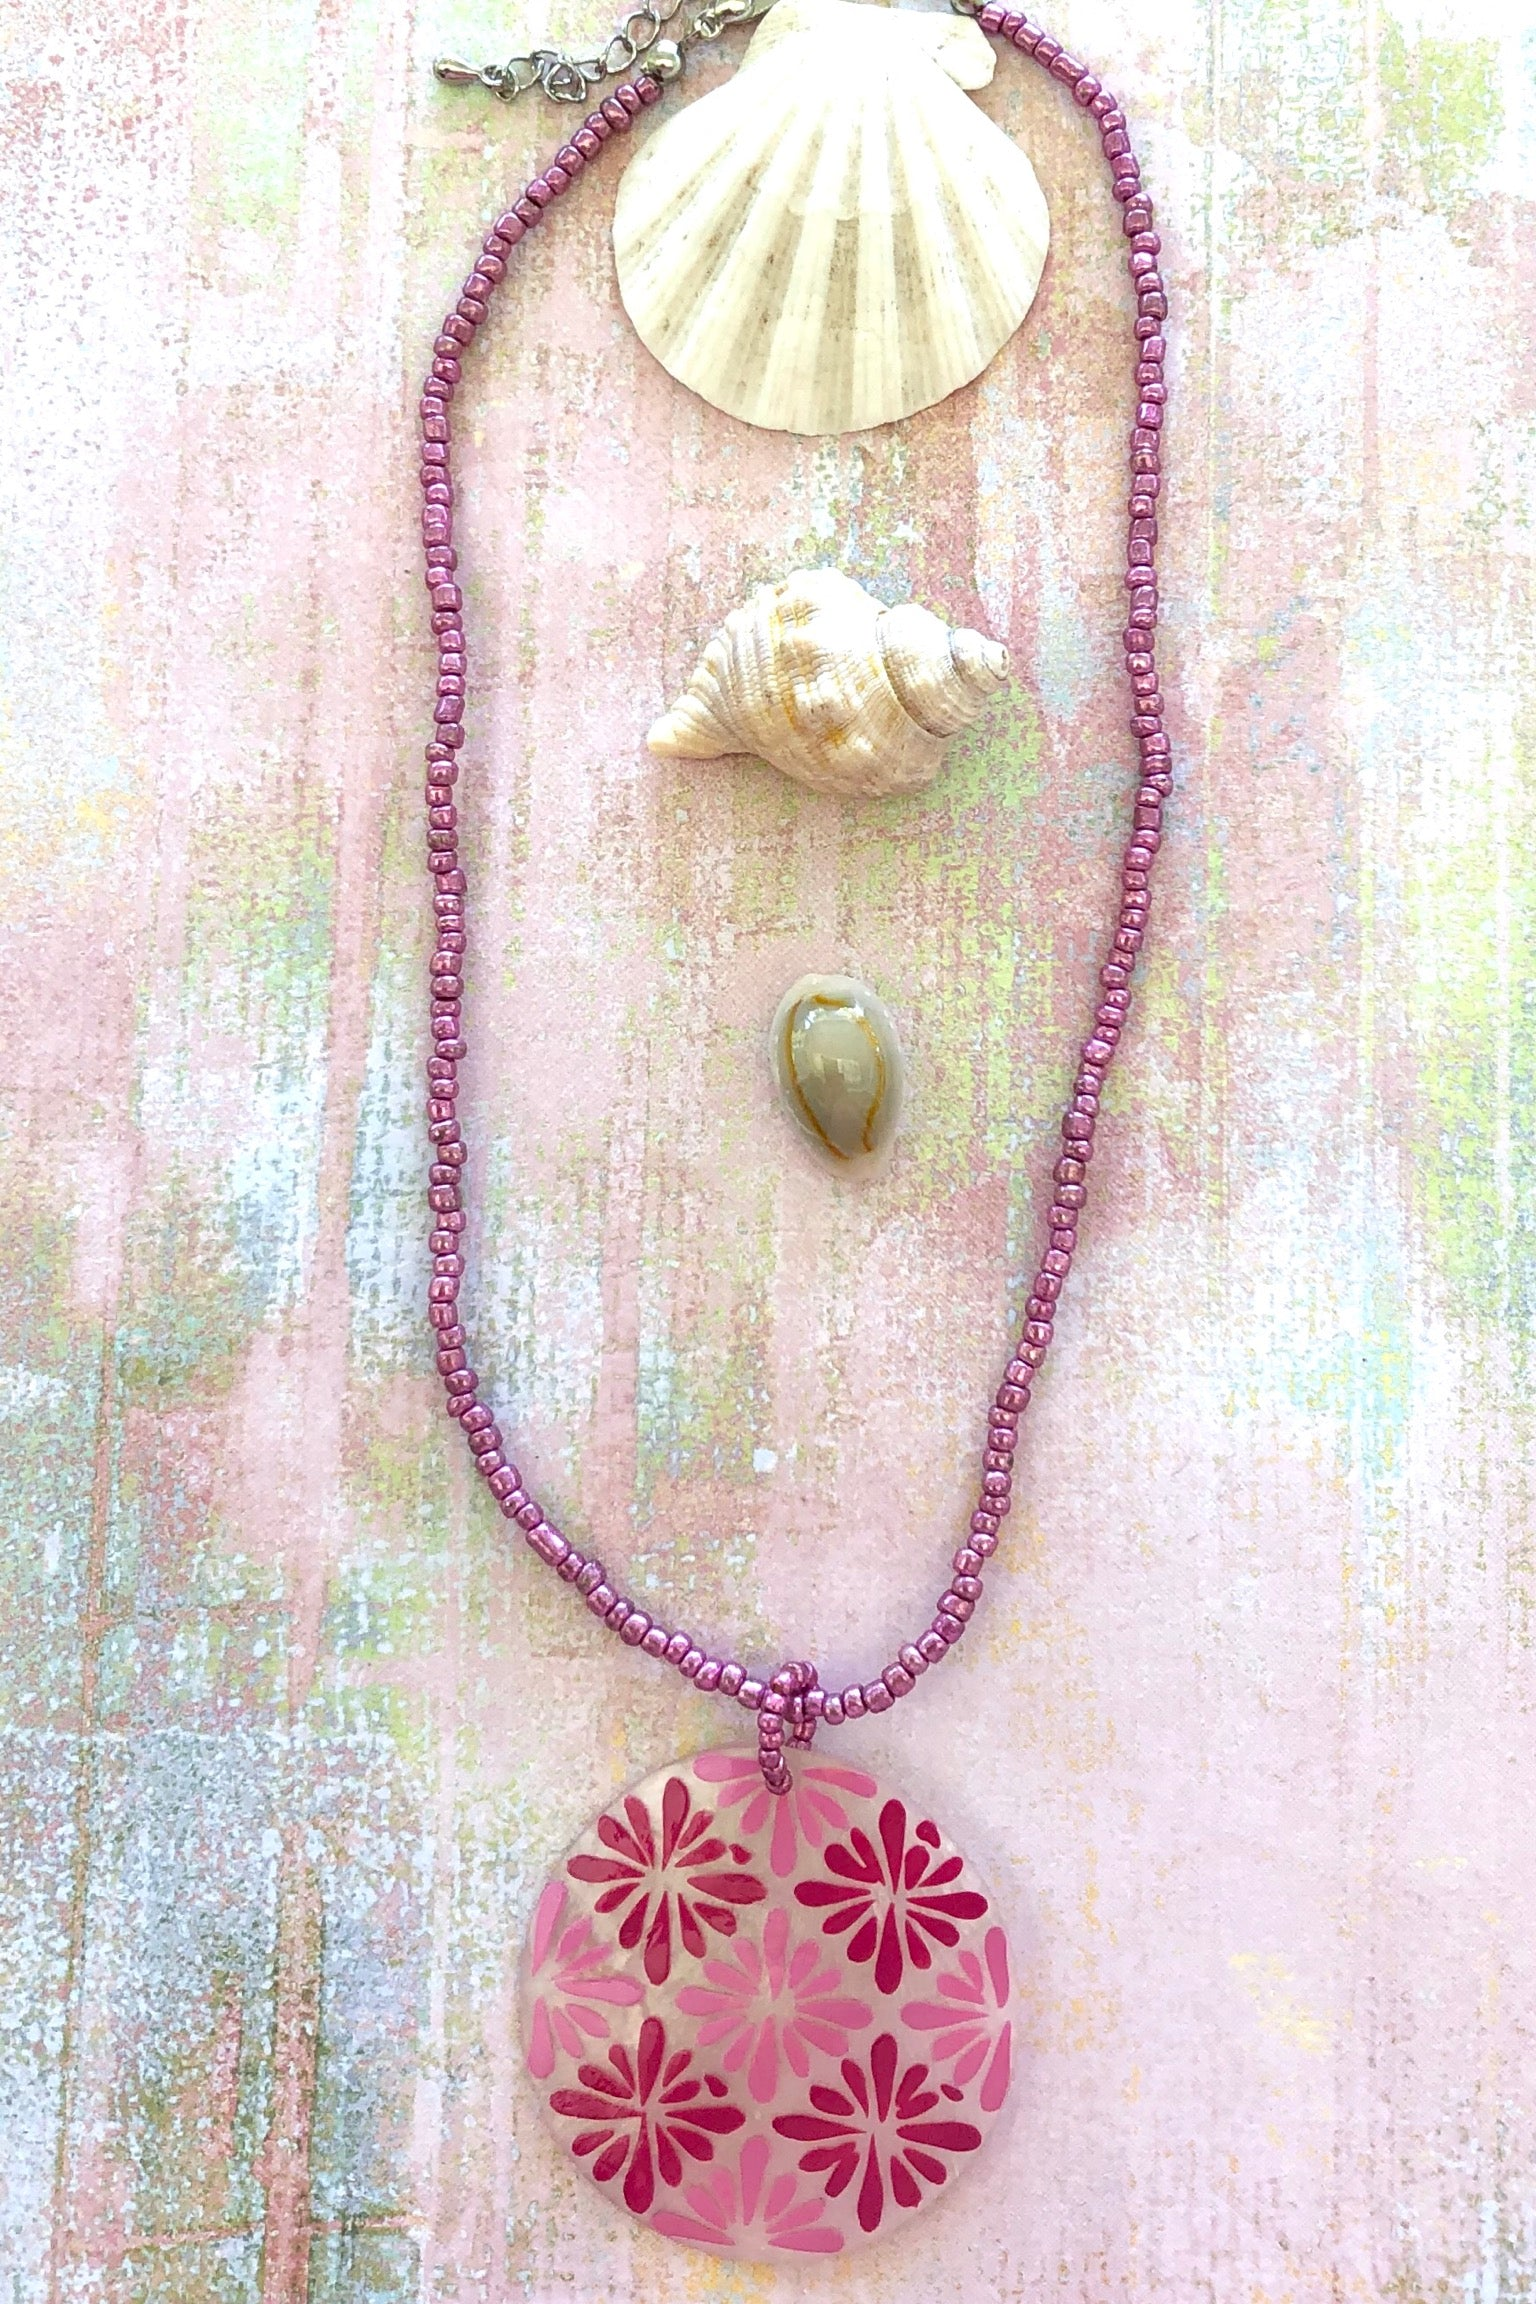 This sweetheart Necklace Beach is made from small irregular beads in pale pinky mauve and the centre is a Capiz shell circle painted with 60's style daisies.